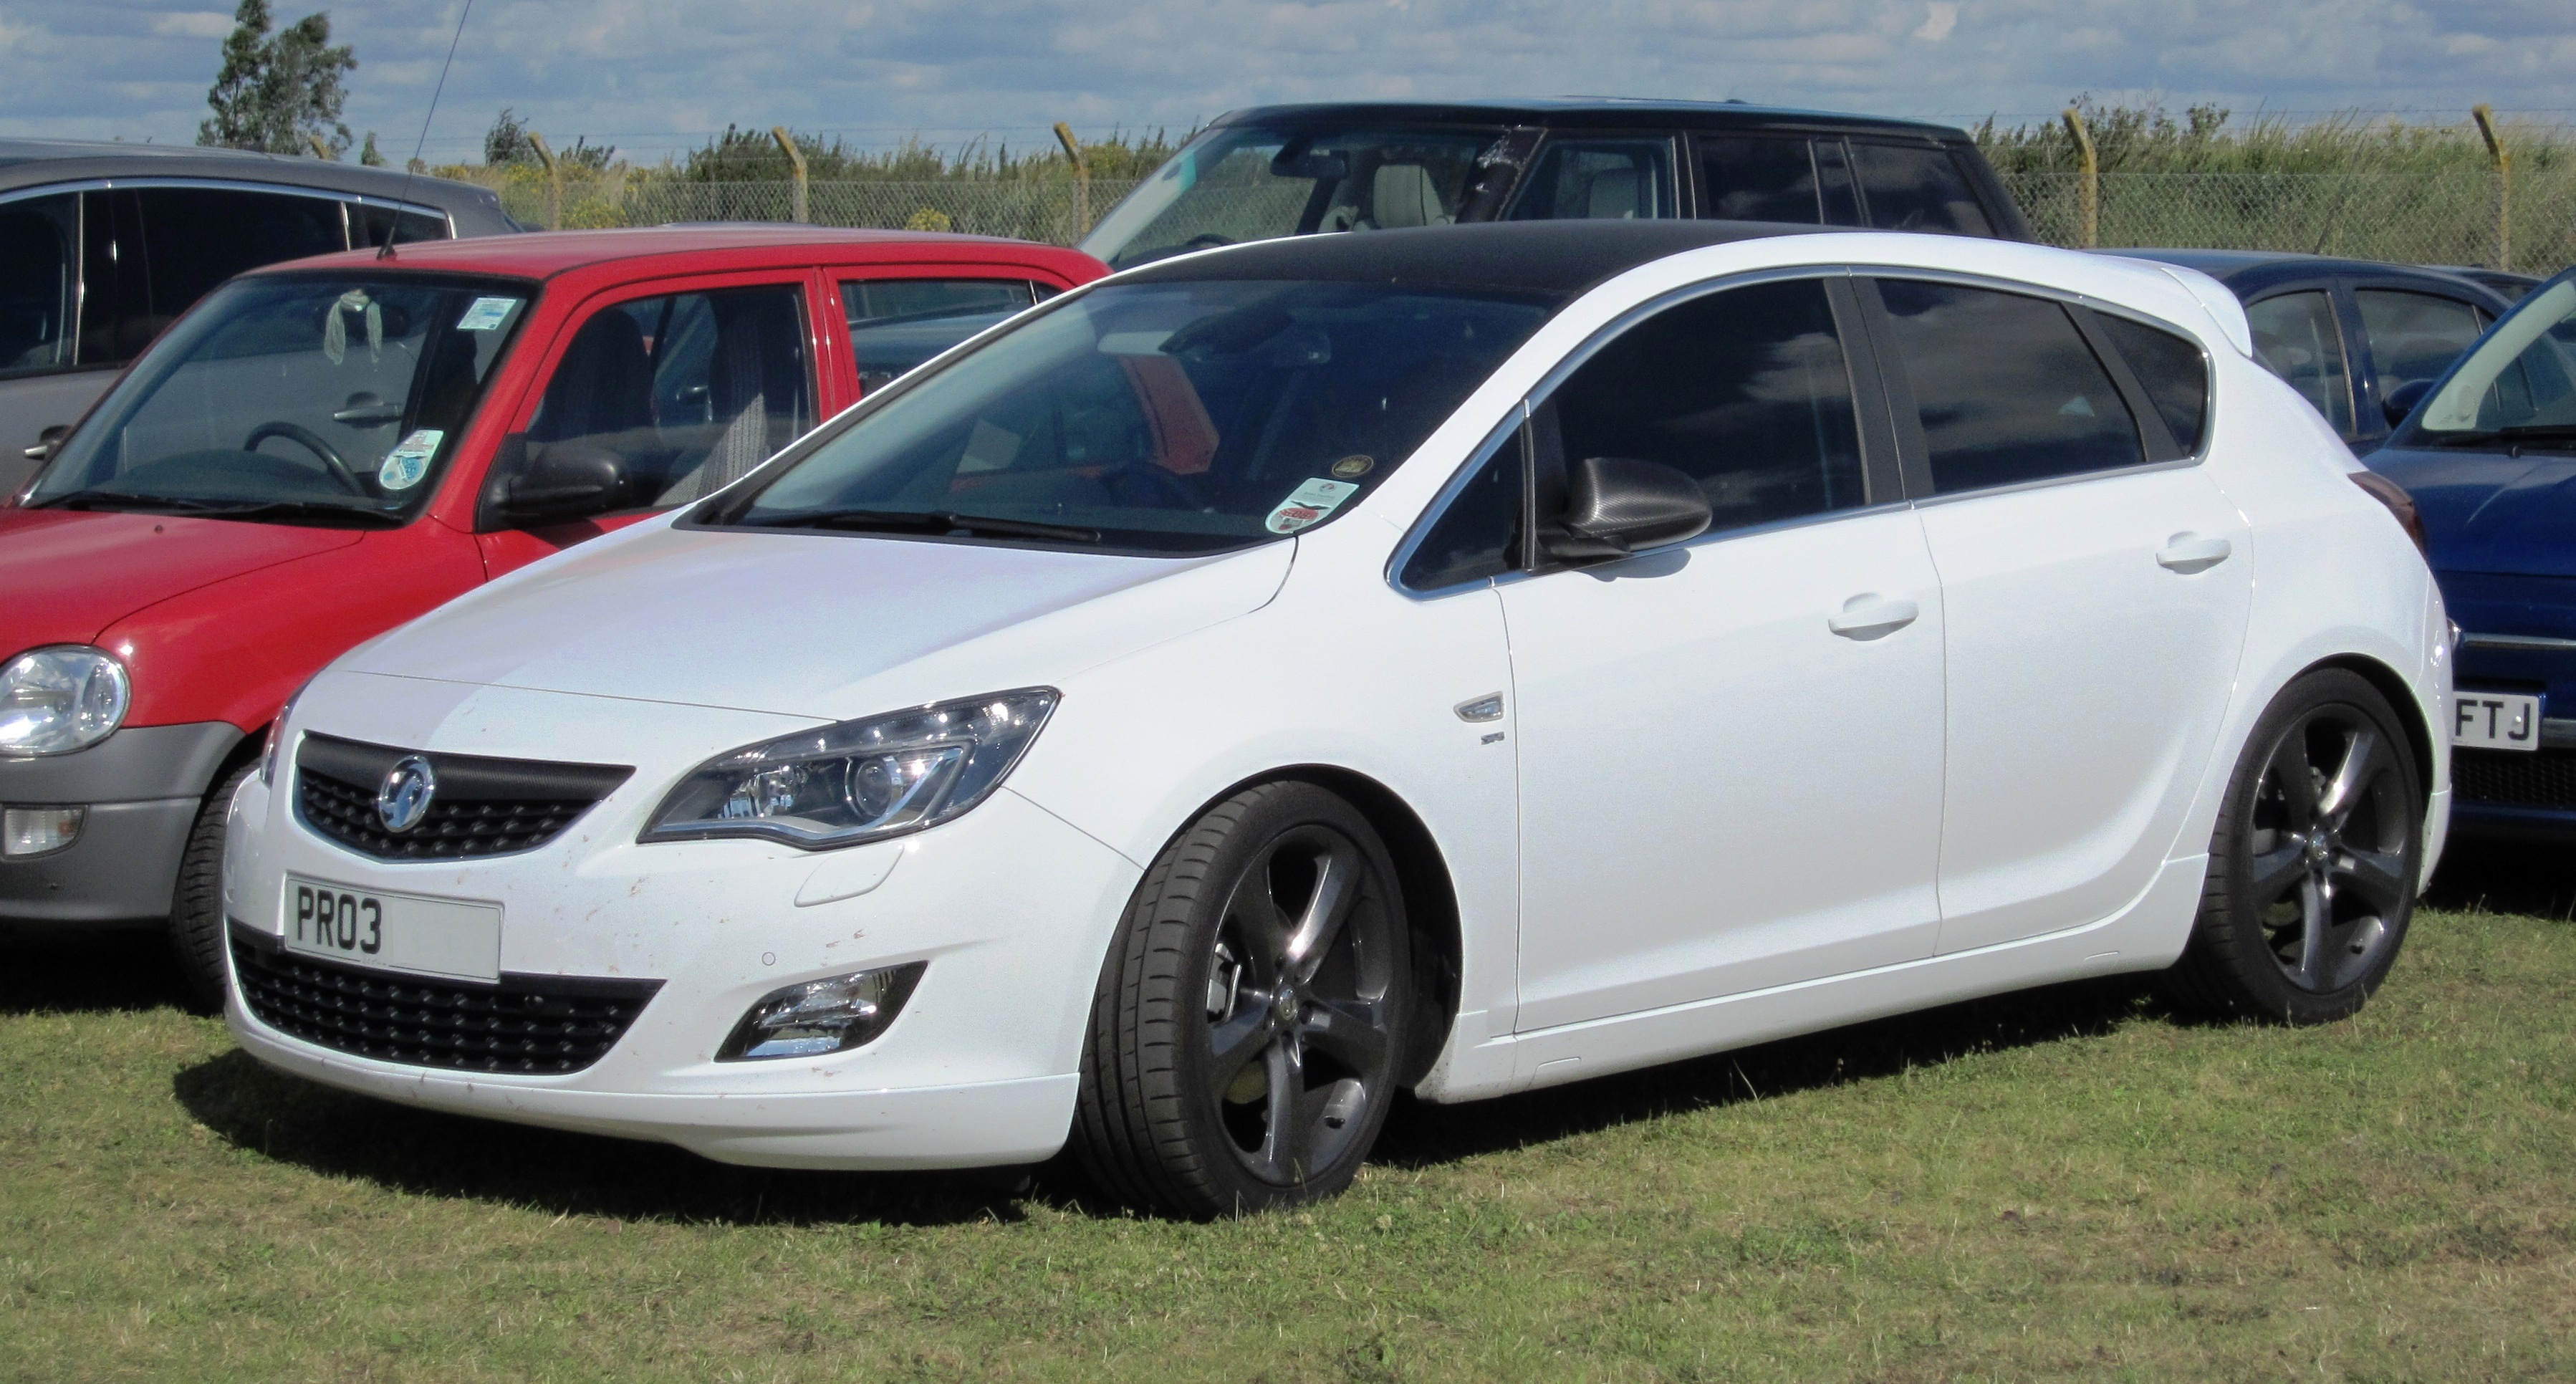 https://upload.wikimedia.org/wikipedia/commons/d/d1/Vauxhall_Astra_1686cc_Reg_Sep_201002.jpg